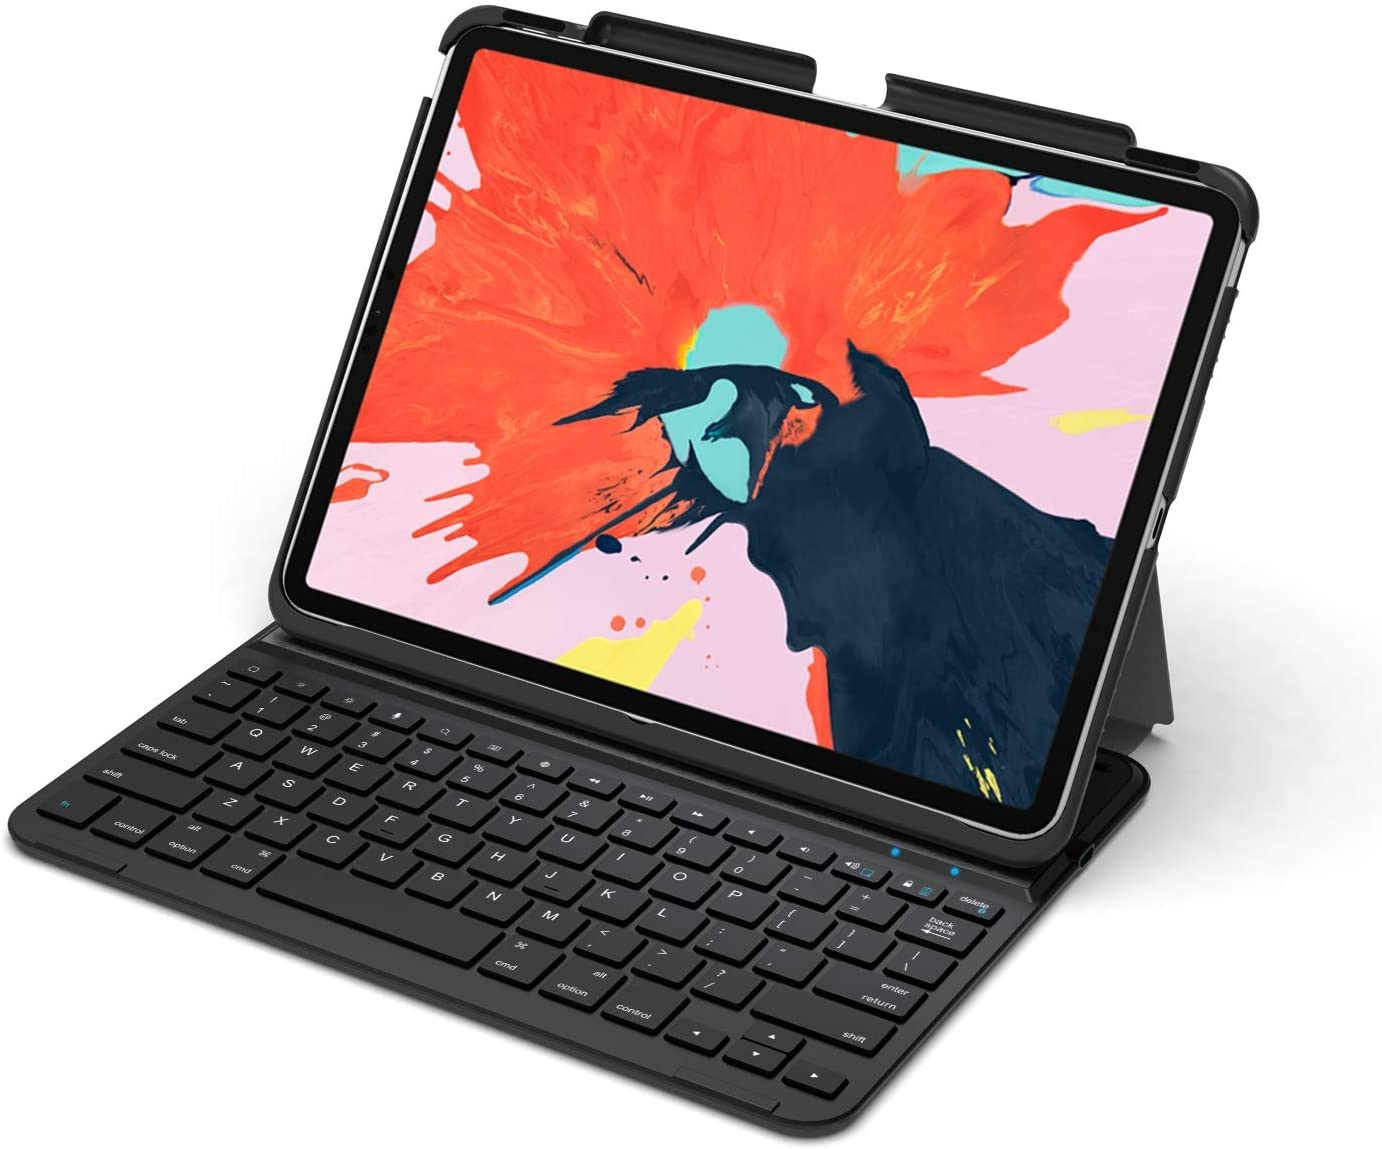 Amazon Com Arteck Ipad Pro 11 Inch Ipad Pro 2020 Keyboard Ultra Thin Bluetooth Keyboard With Folio Full Protection Case For Apple Ipad Pro 11 Inch 2nd Generation 2020 And Ipad Pro 11 Inch 2018 Computers